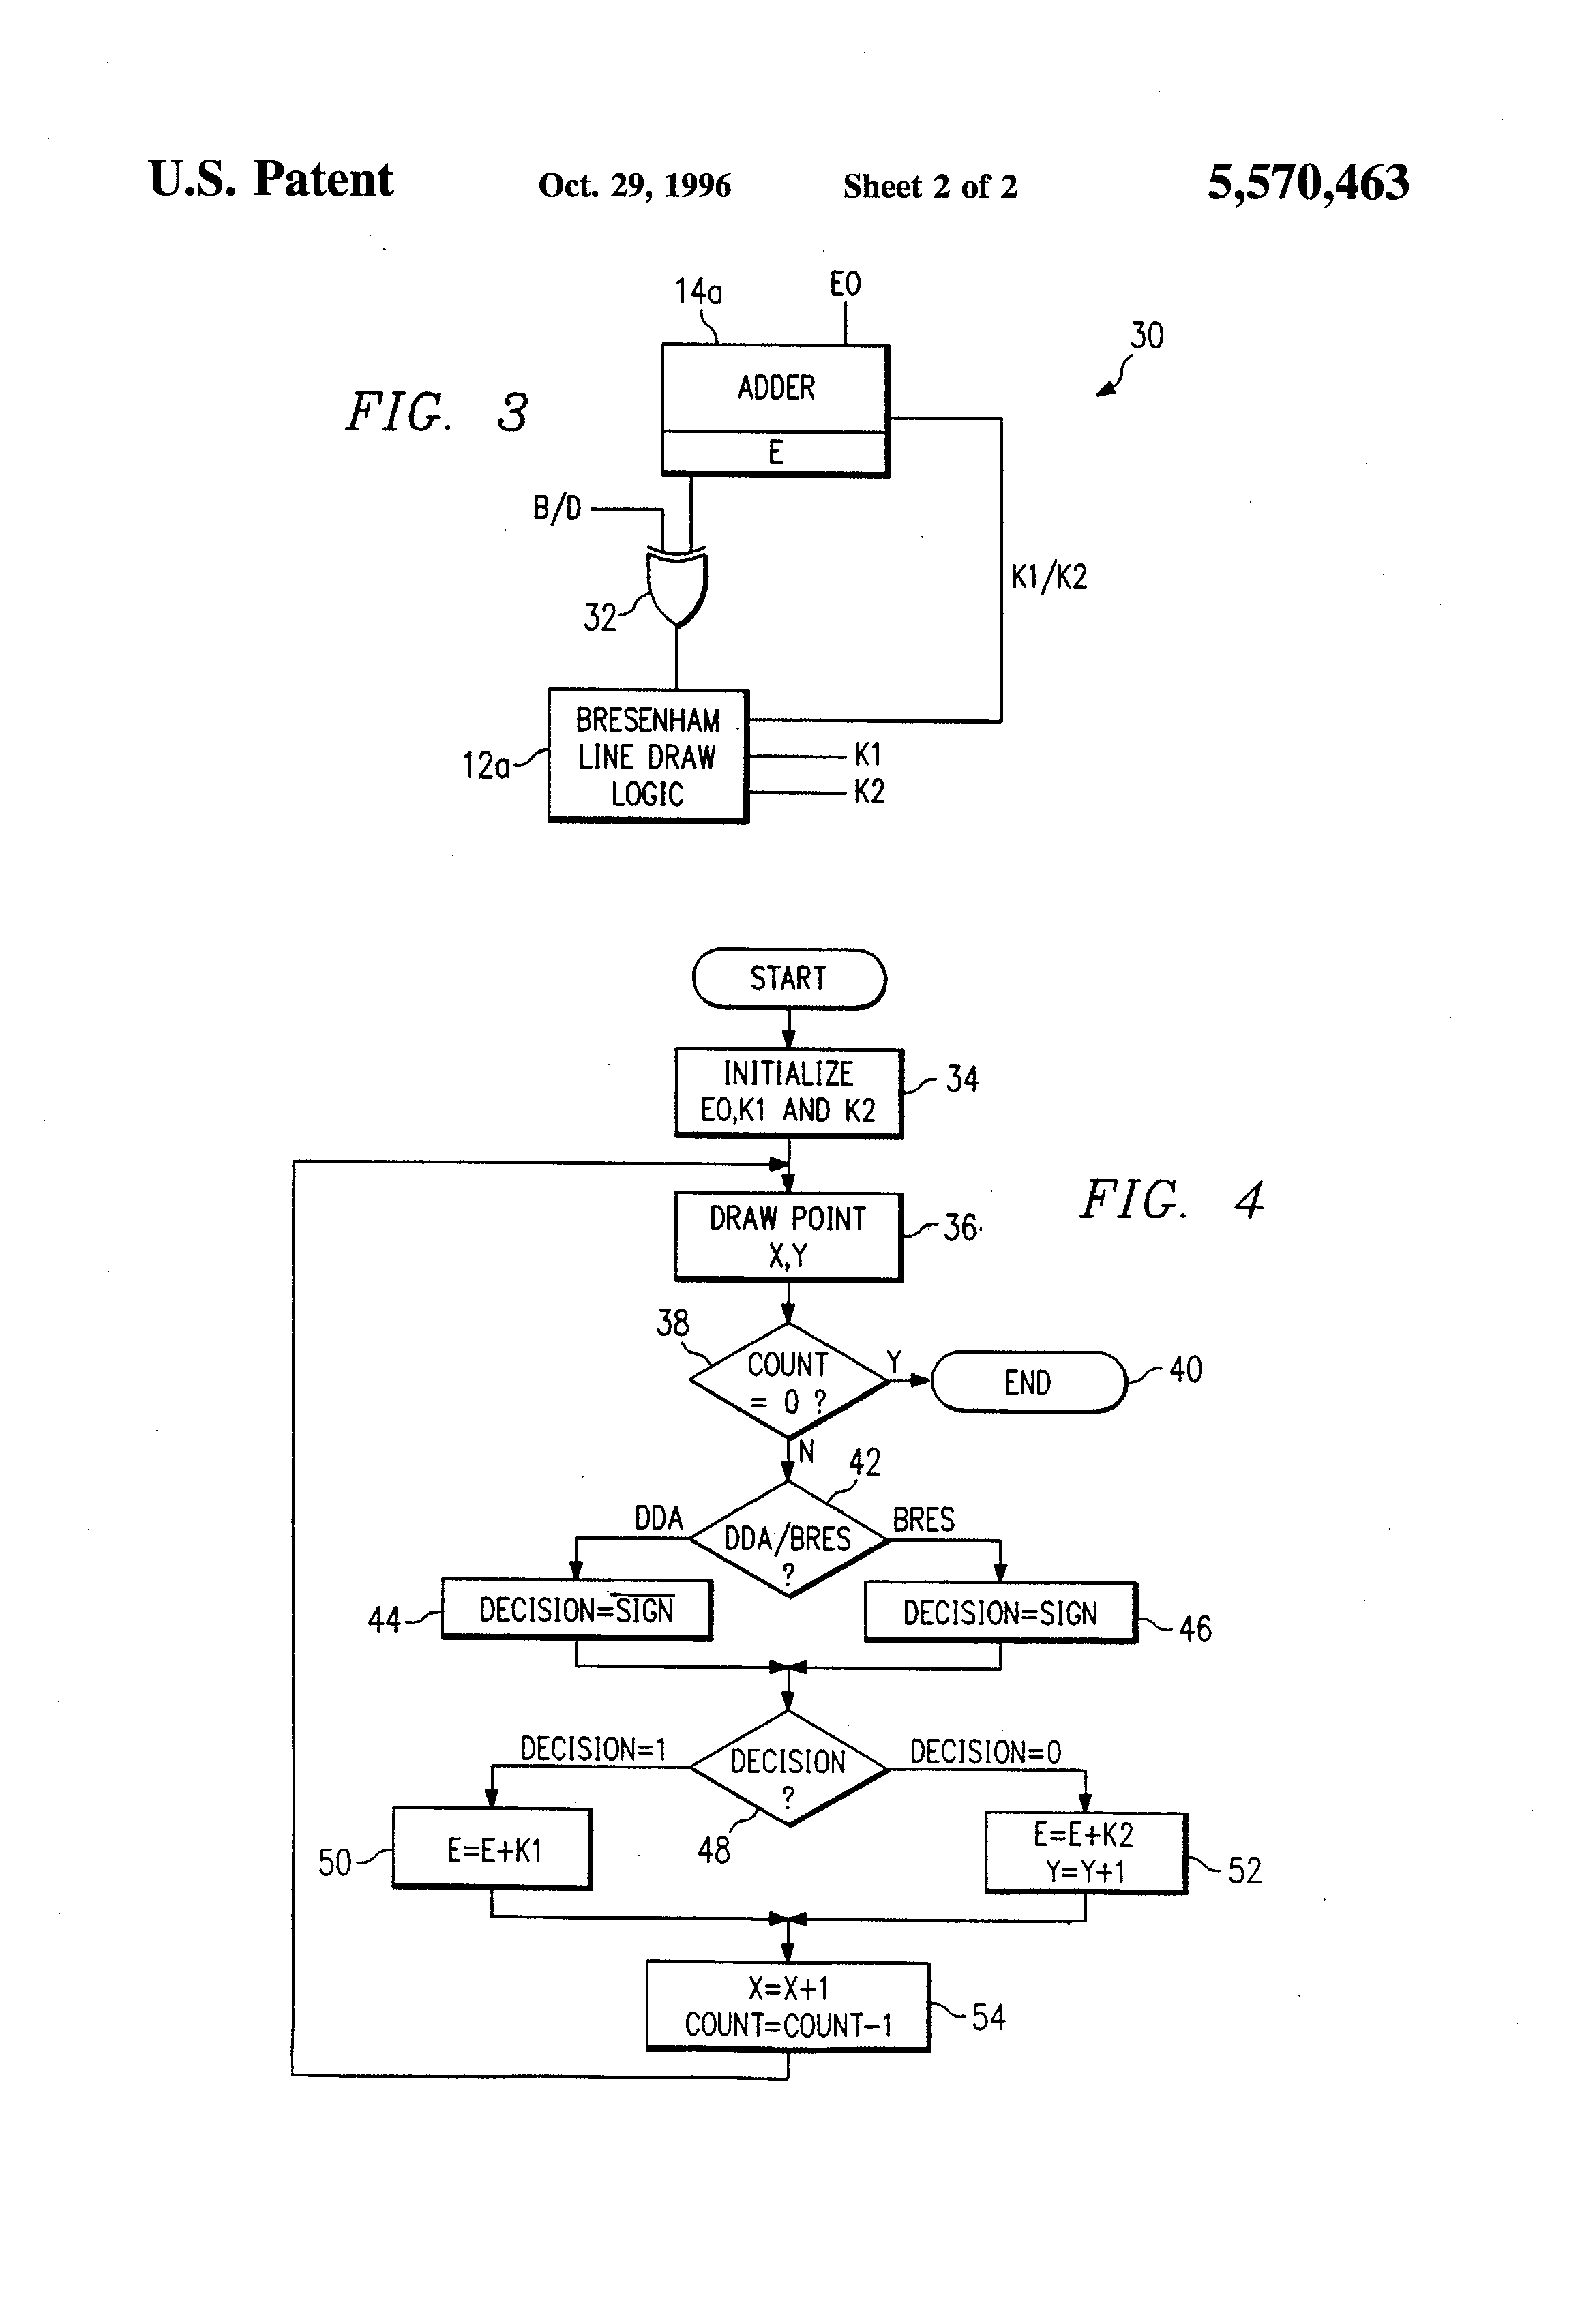 Implementation Of Line Drawing Algorithm : Patent us bresenham dda line draw circuitry